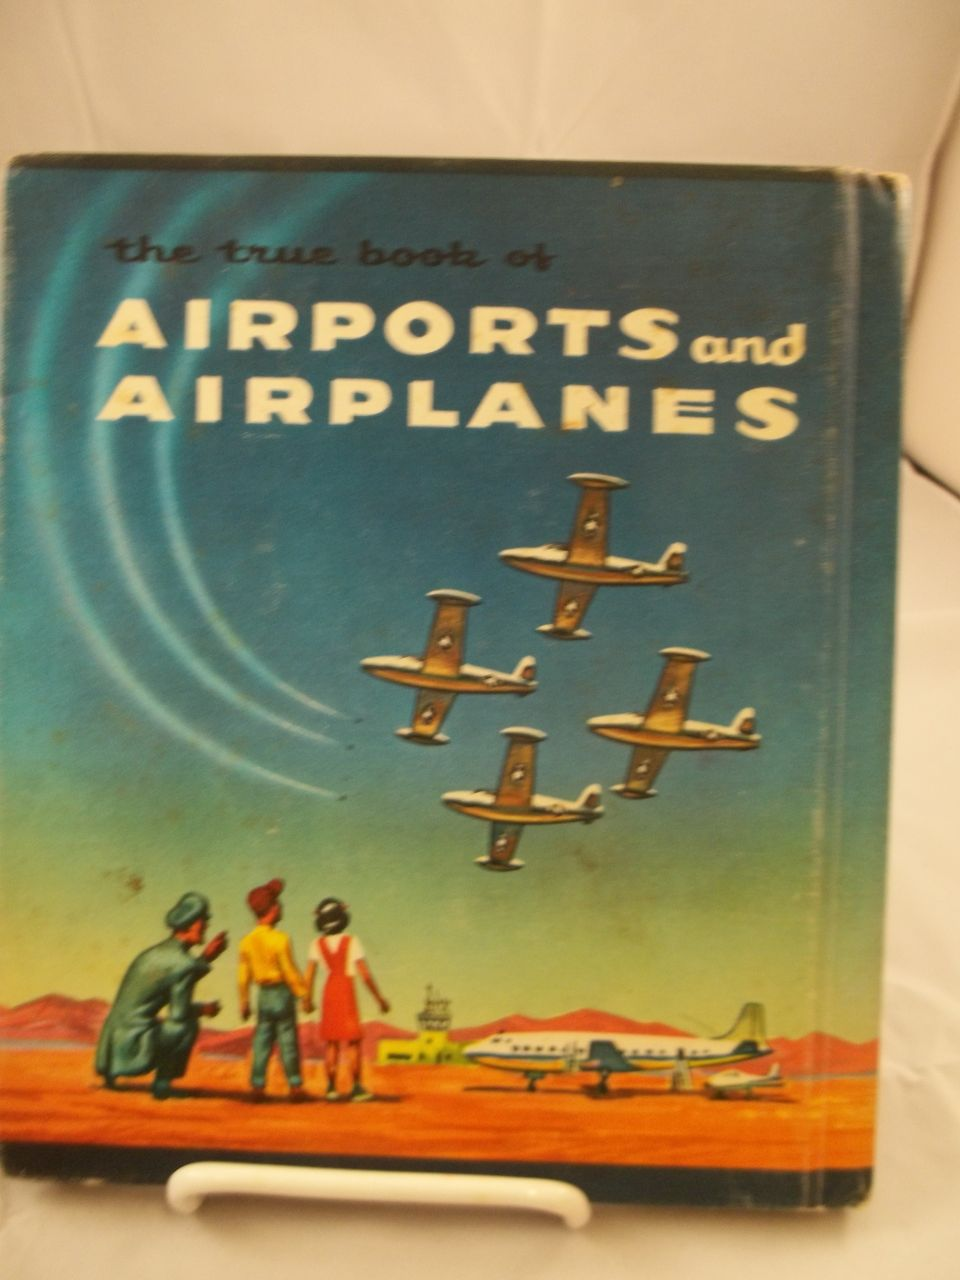 Childrens The True Book of Airports and Airplanes